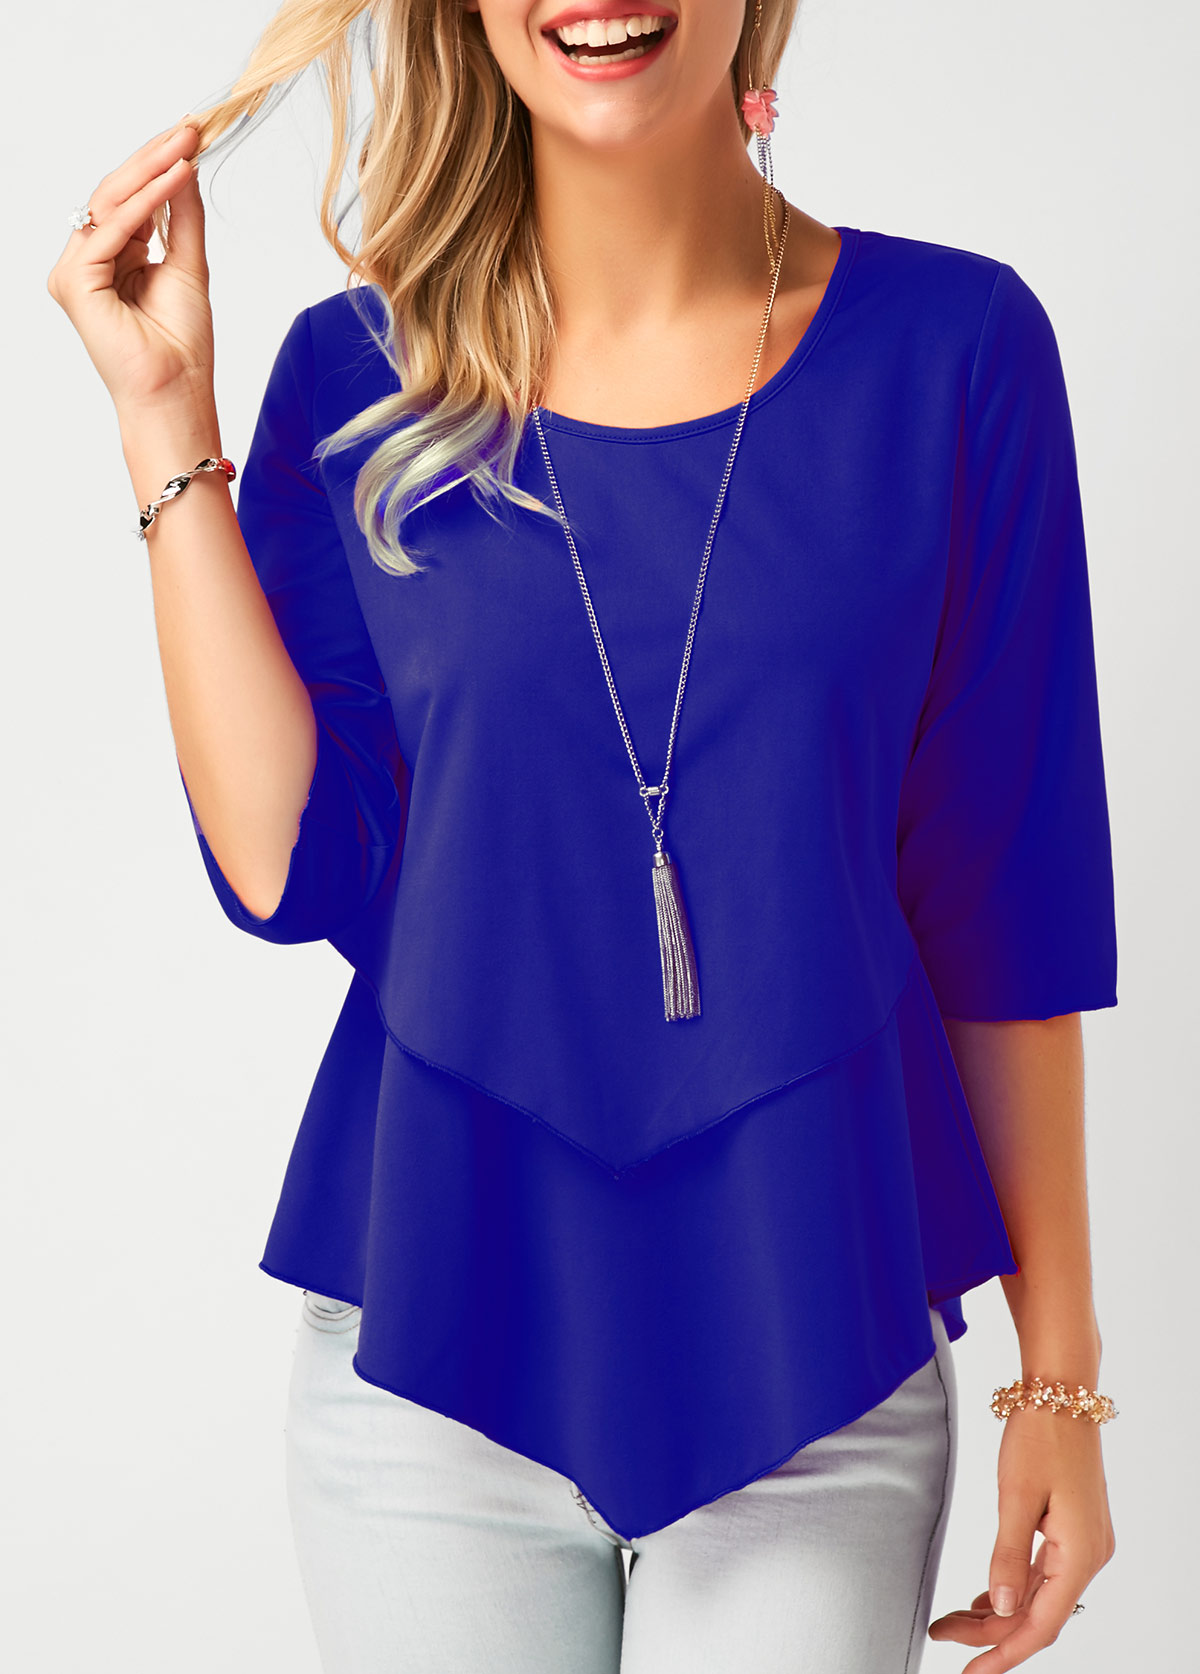 Asymmetric Hem Royal Blue Chiffon Blouse